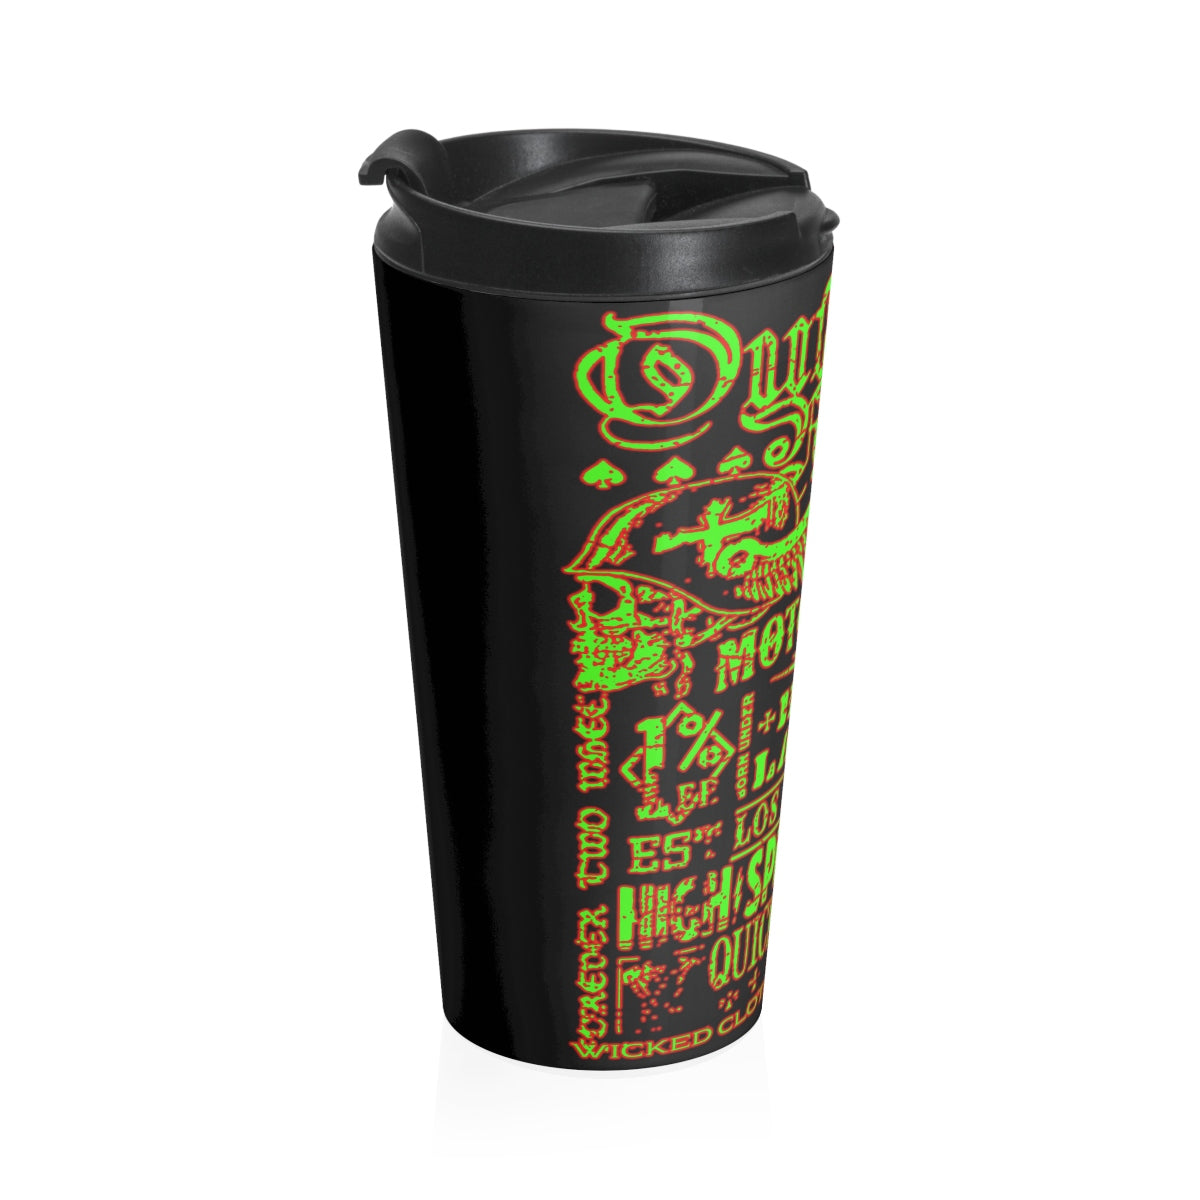 Outlaw Racing/ Green/Red Stainless Steel Travel Mug